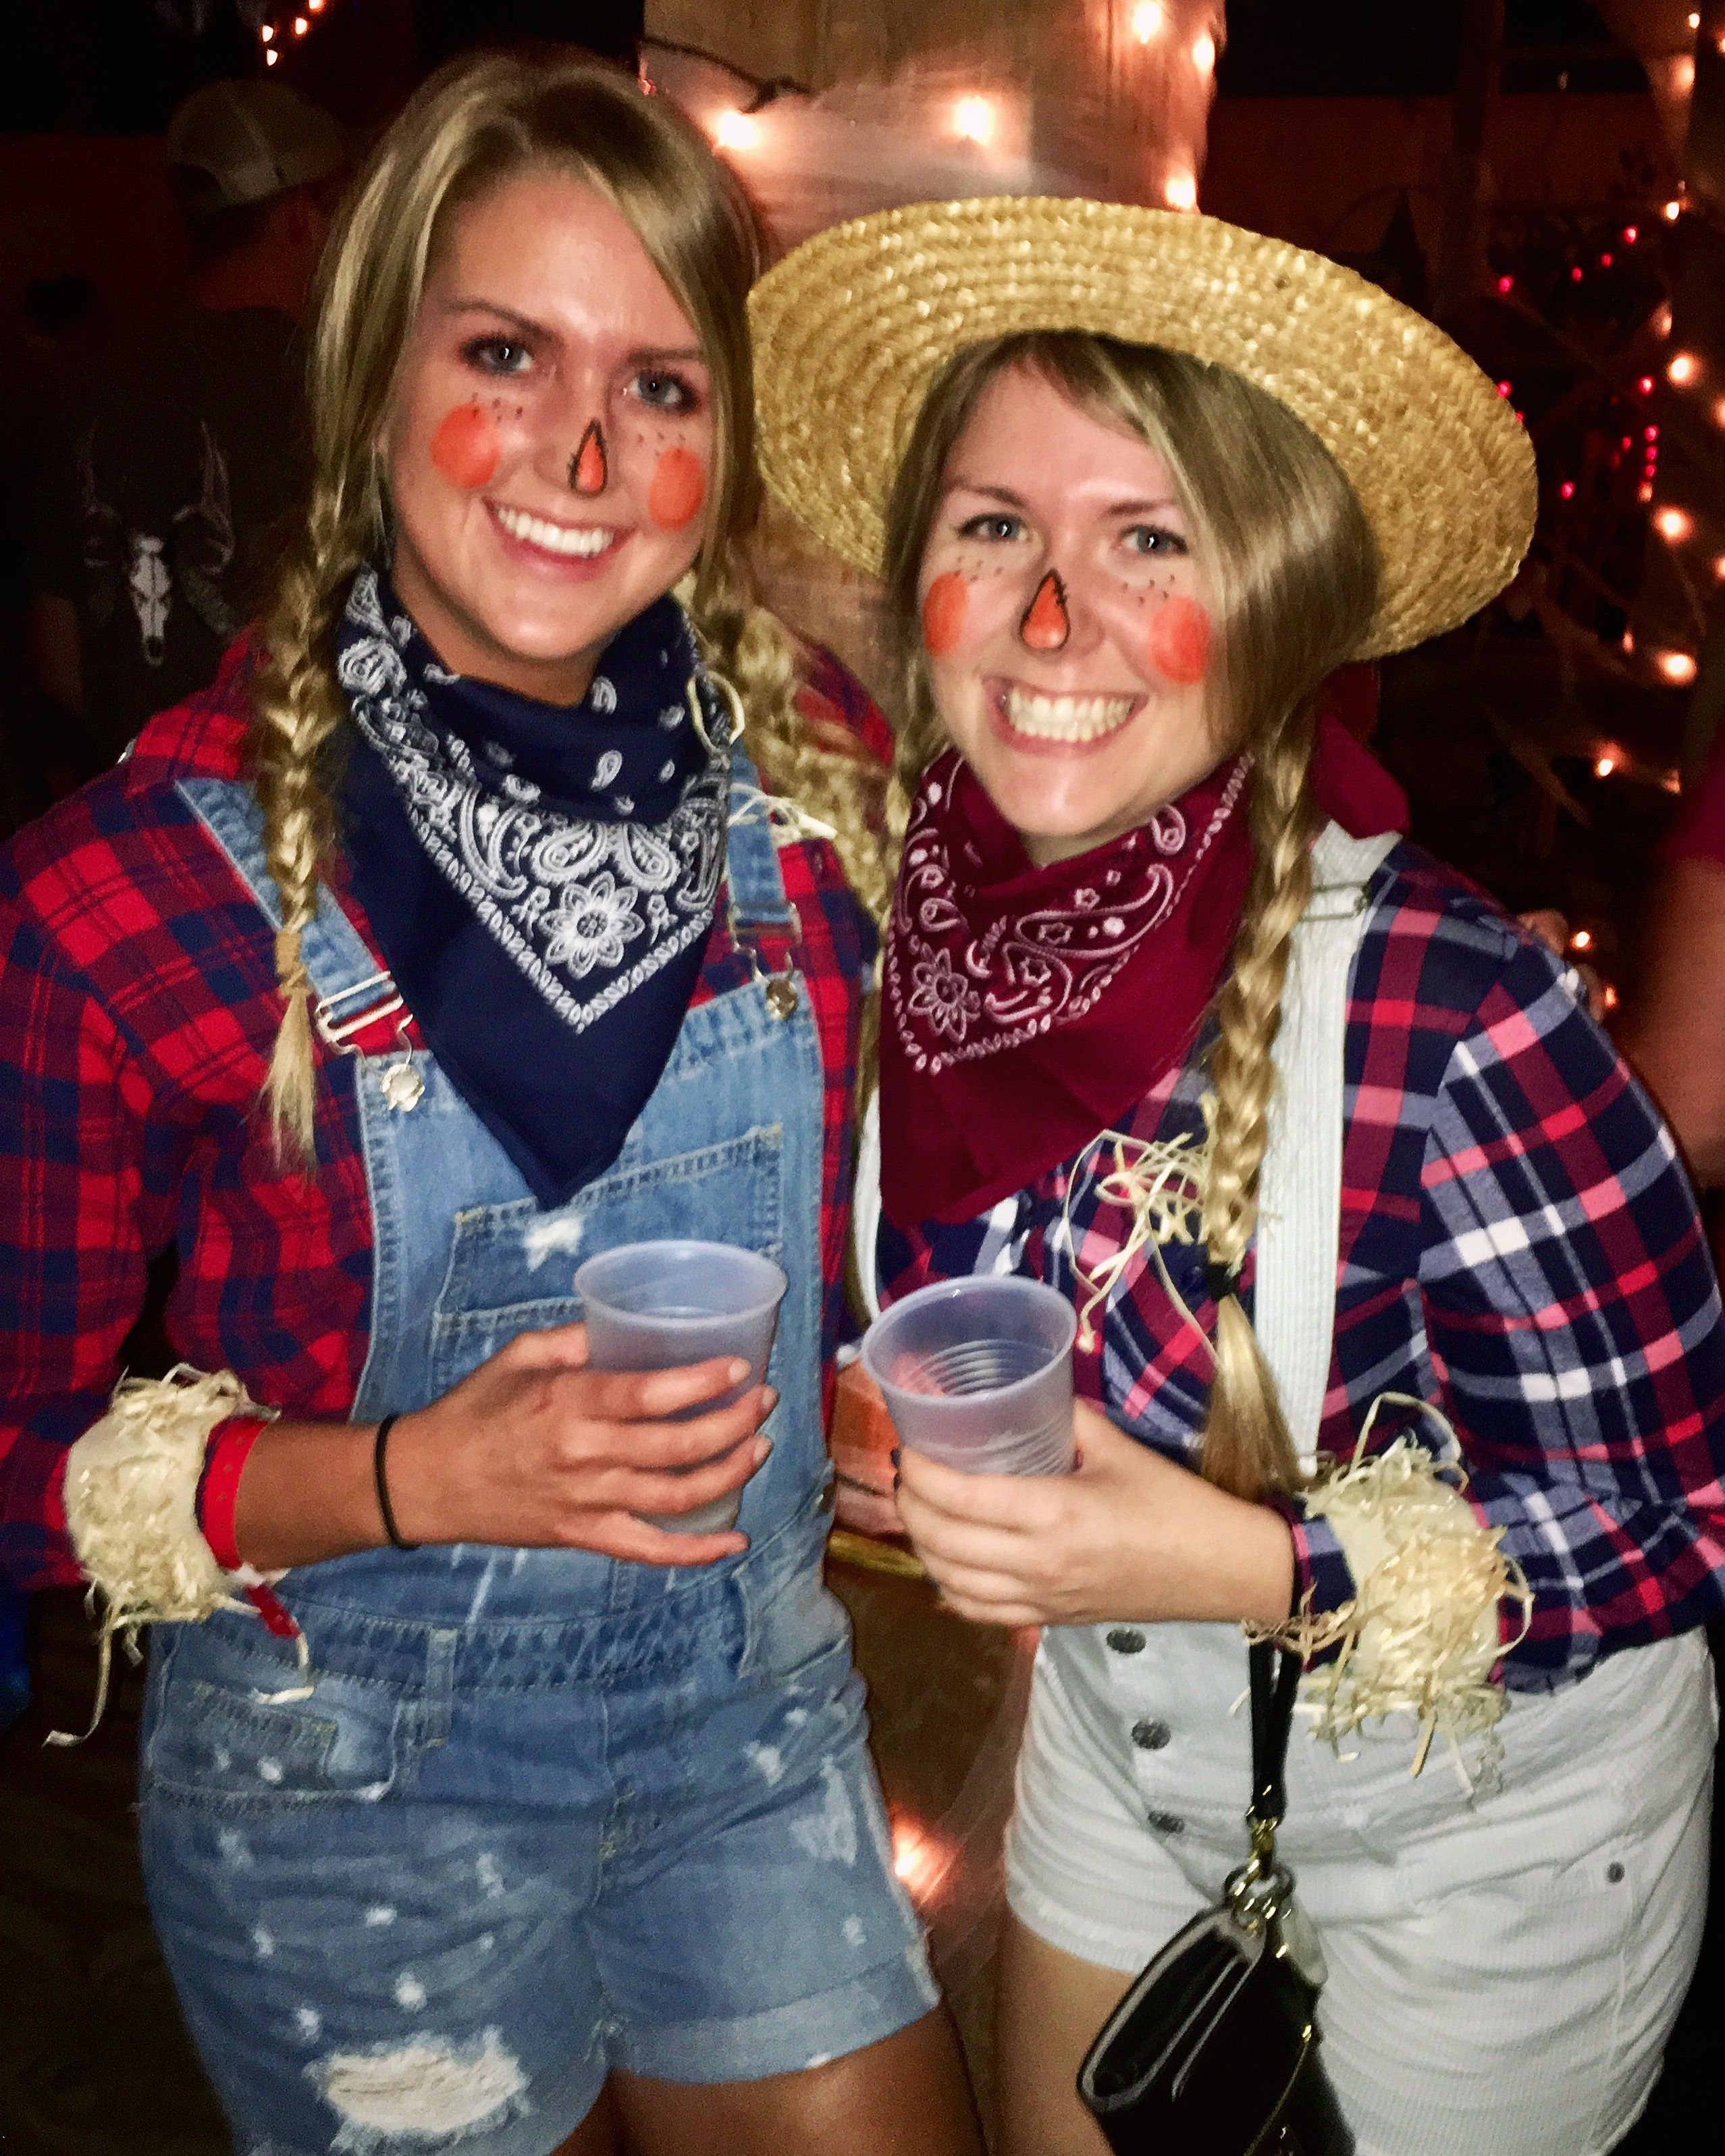 Easy scarecrow costume: straw hat, nose and cheek makeup, bandana, overalls, flannel, fake straw hot glued onto ribbon and pinned on sleeves, and cowboy boots #scarecrowcostumediy